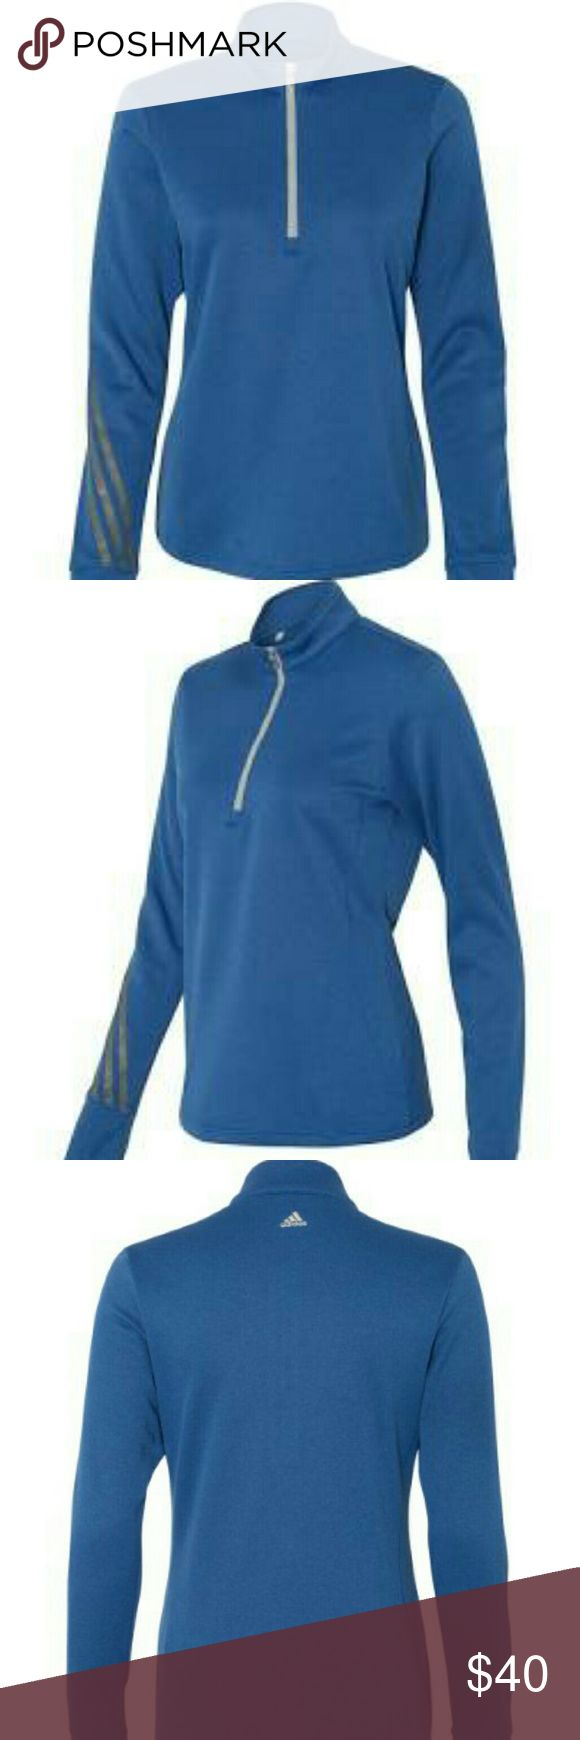 Adidas Golf A275 Ladies' Heather 3-Stripes Quarter 100% polyester with hydrophilic finish Lightweight fabric and smooth handfeel Princess side seaming for shaping 3-stripes heat transfer on right forearm Thumb hole opening on cuffs Adidas brandmark on back center neck adidas Tops